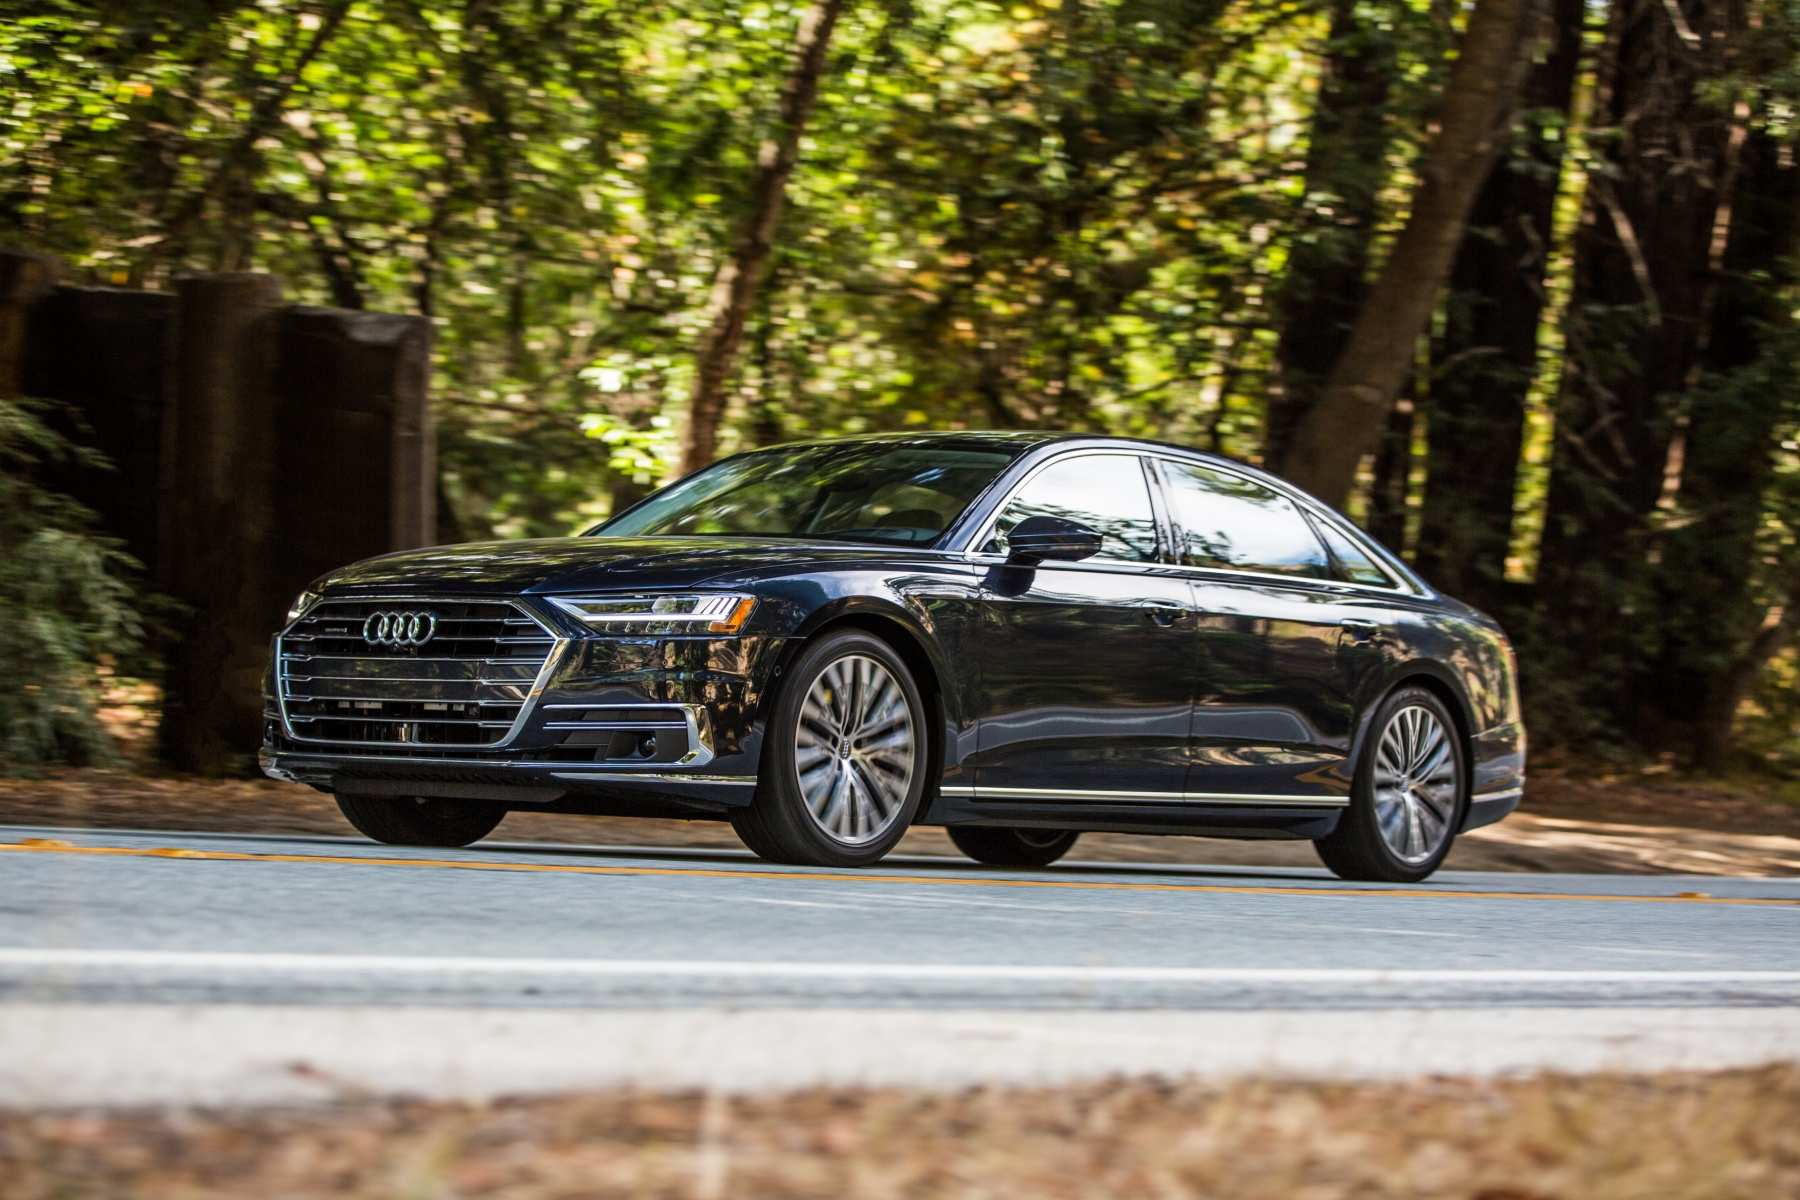 42 The Best 2019 Audi A8 L In Usa Model